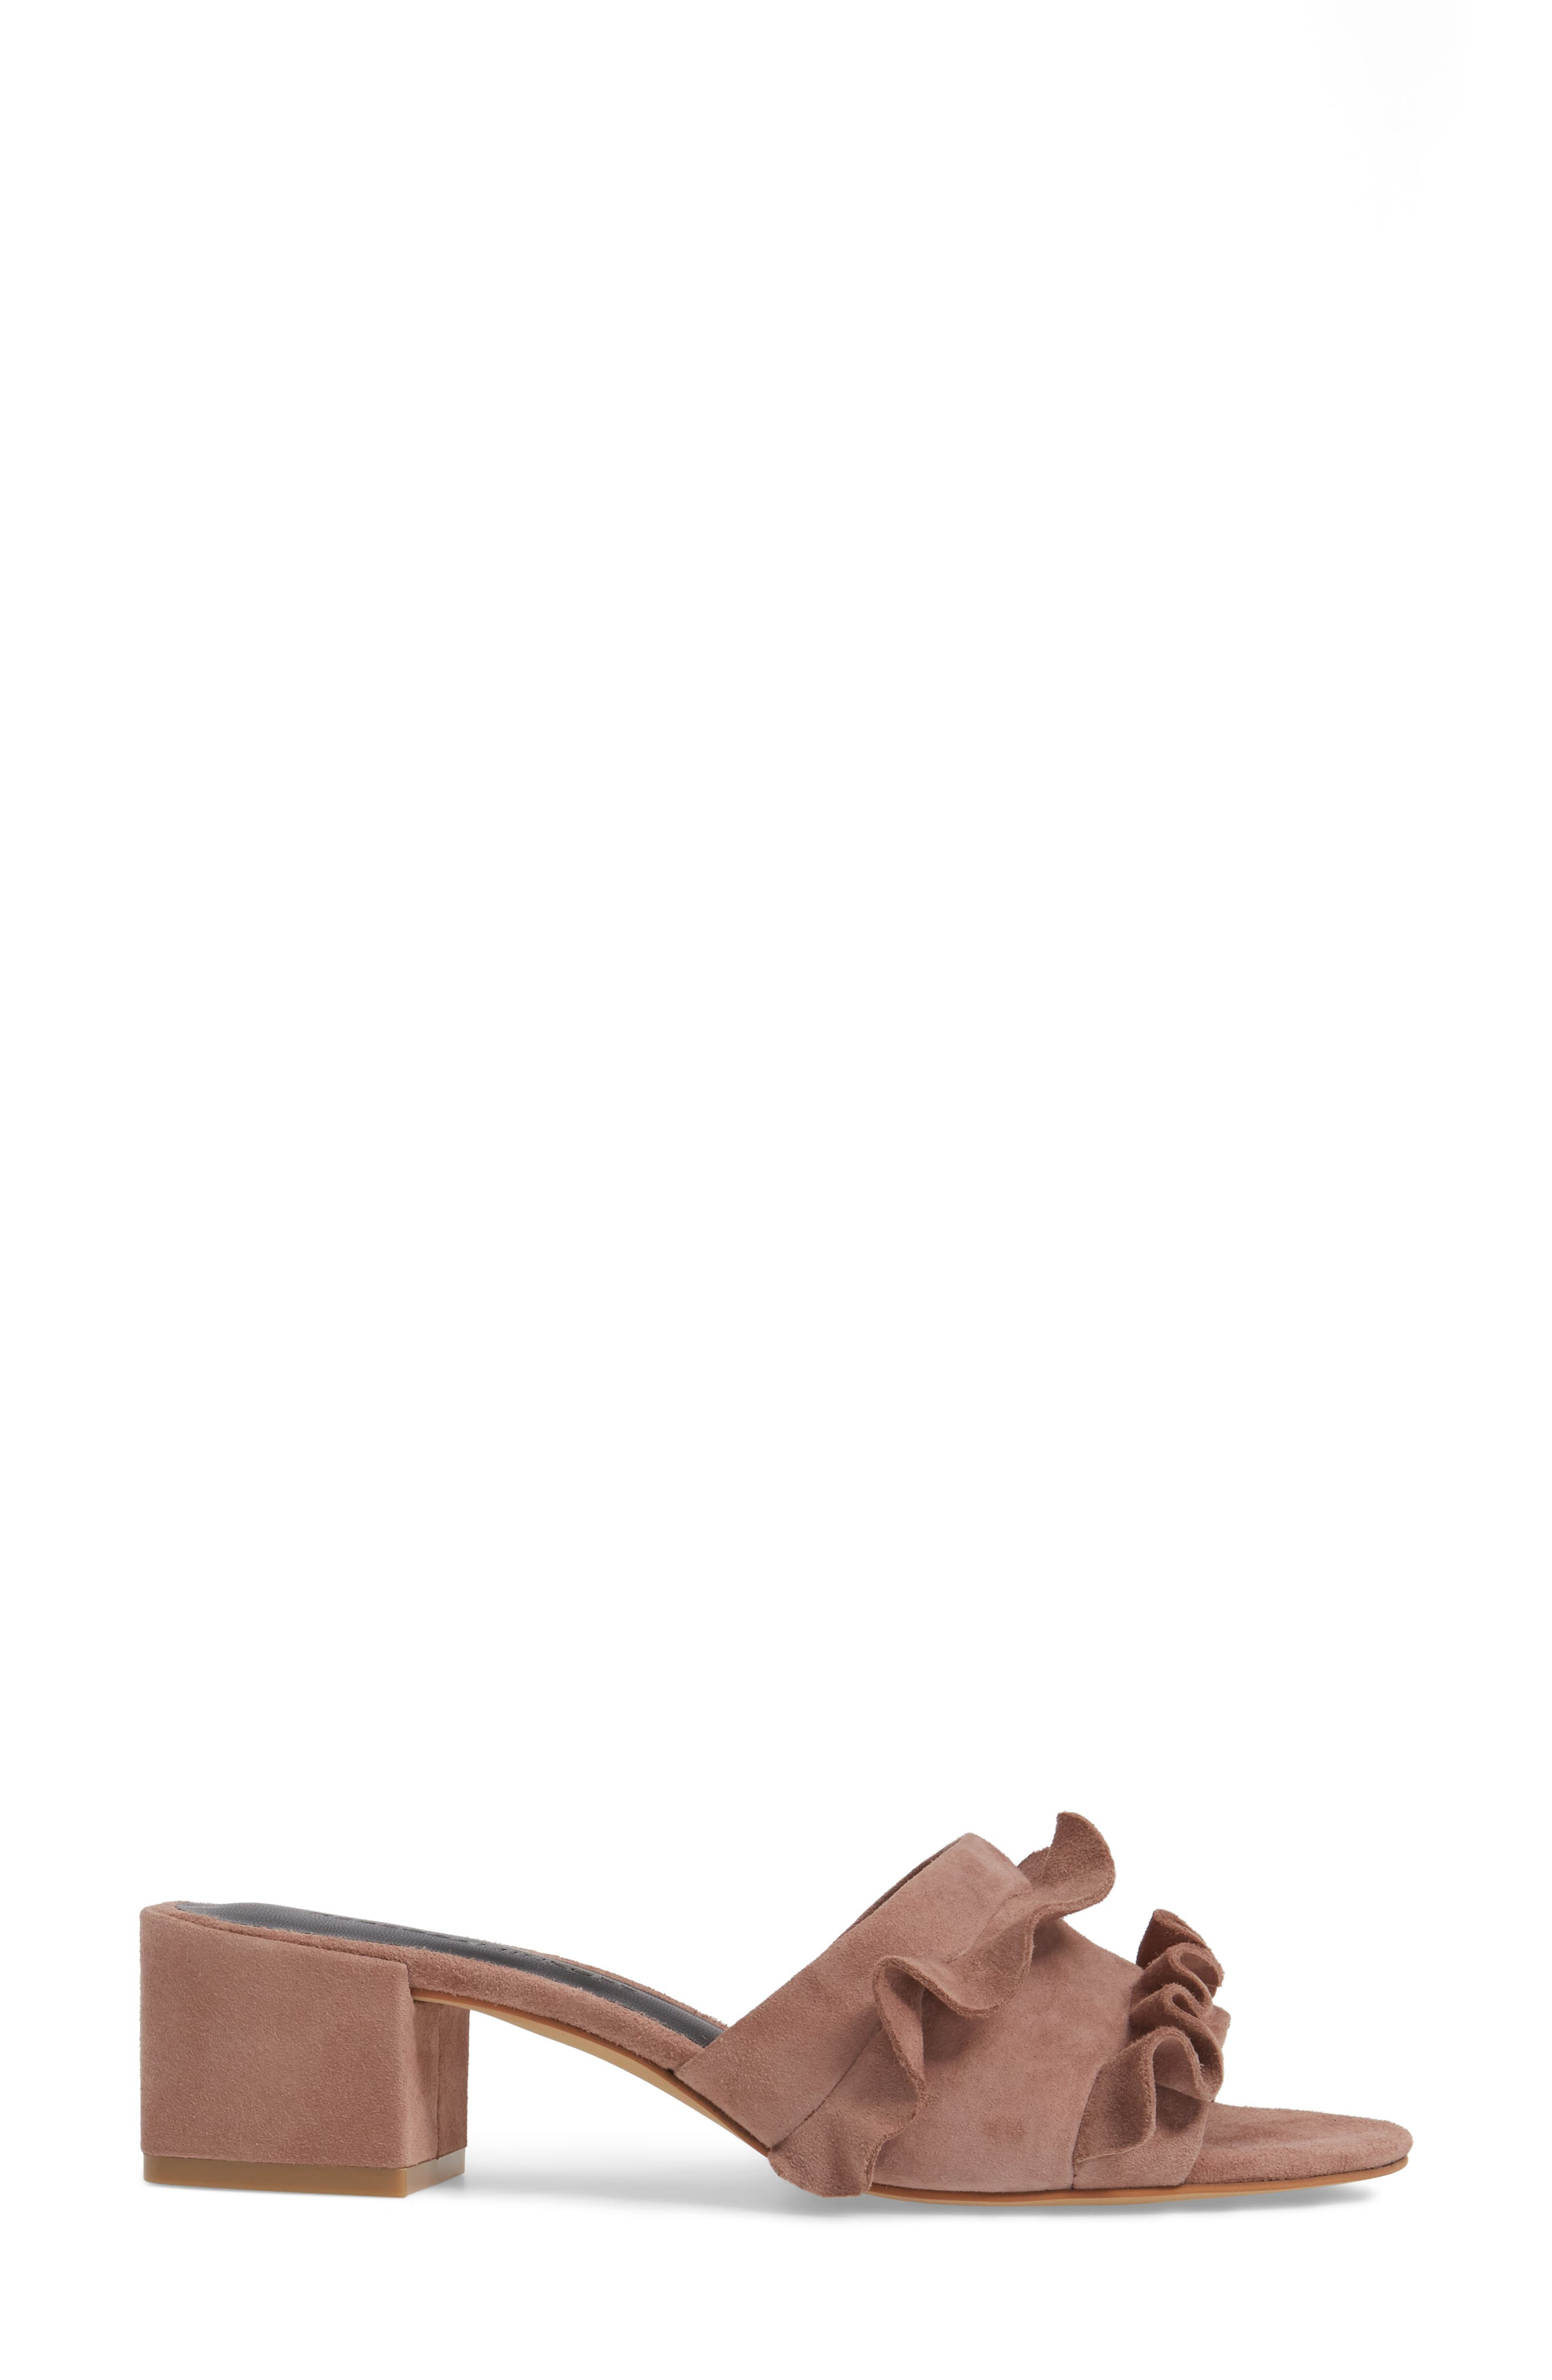 Isabelle Ruffle Mule Sandal,                             Alternate thumbnail 3, color,                             Berry Smoothie Suede